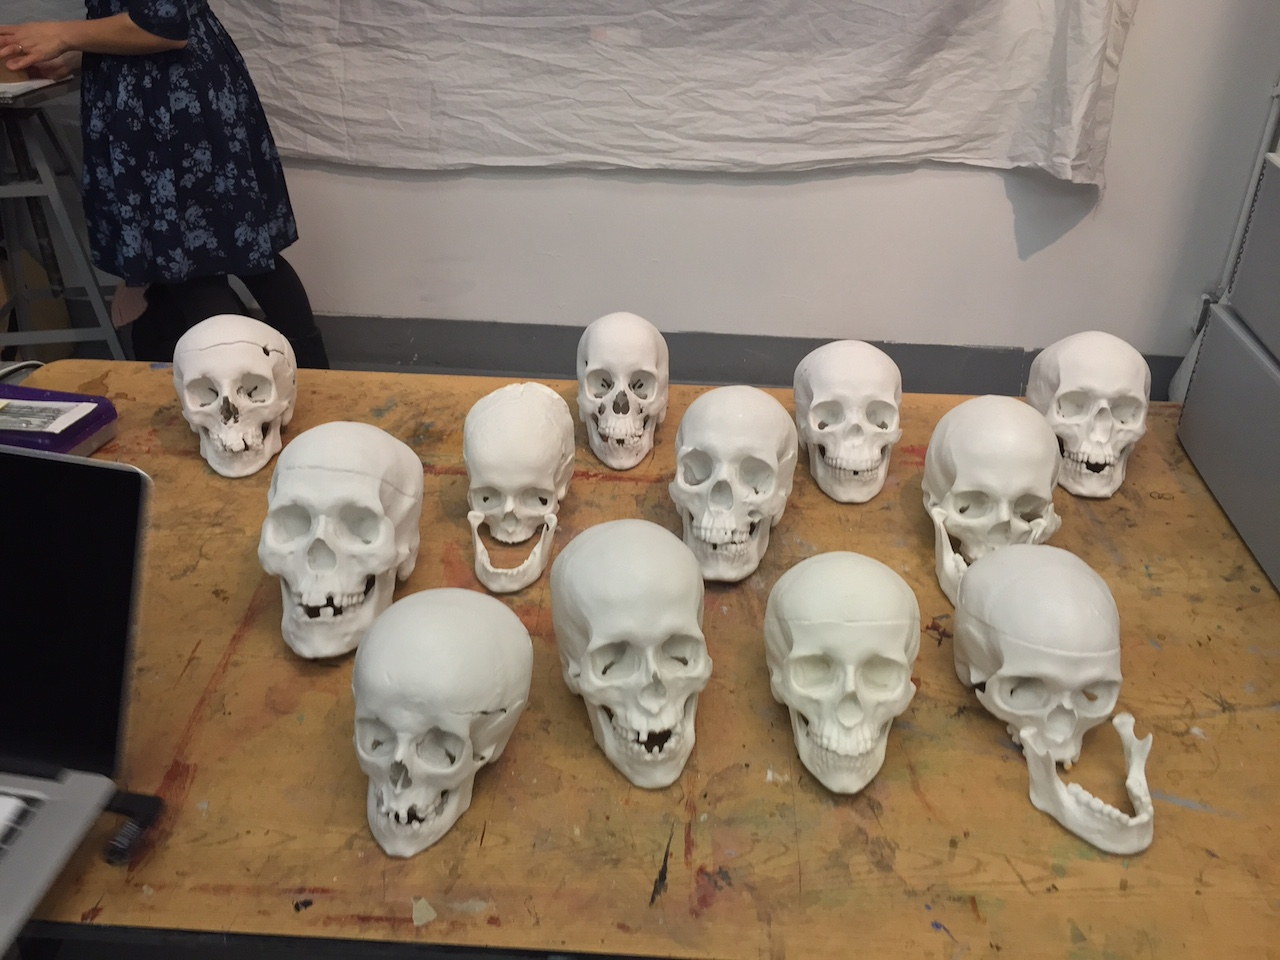 Replicas of the unidentified skulls